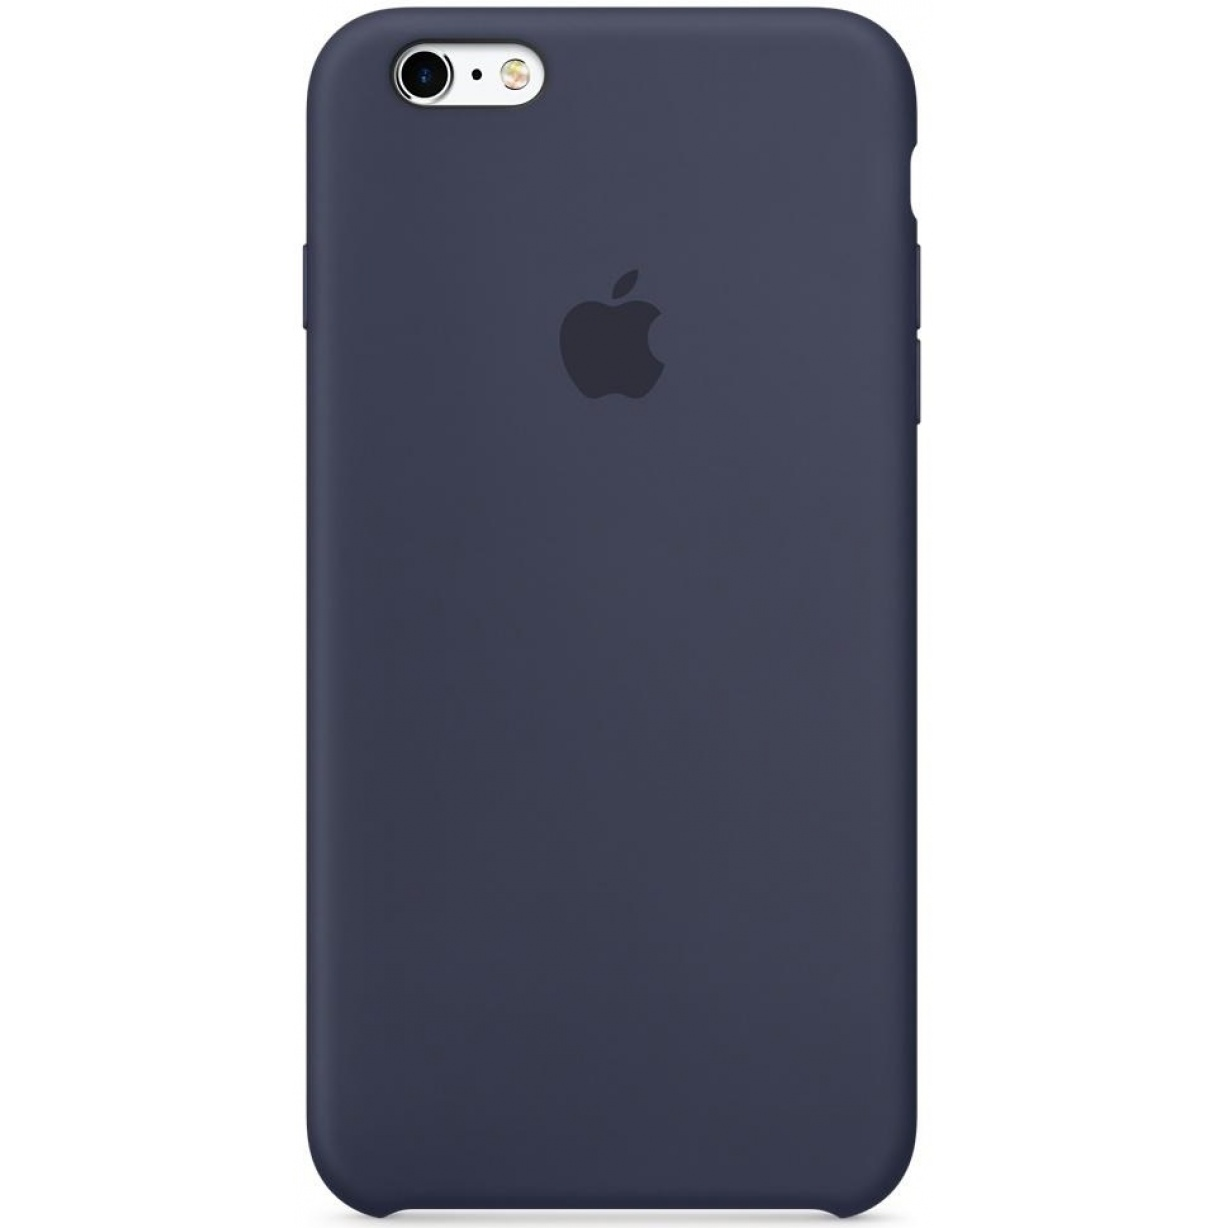 Nugarėlė Apple iPhone 6/6s Silicone Case Blue